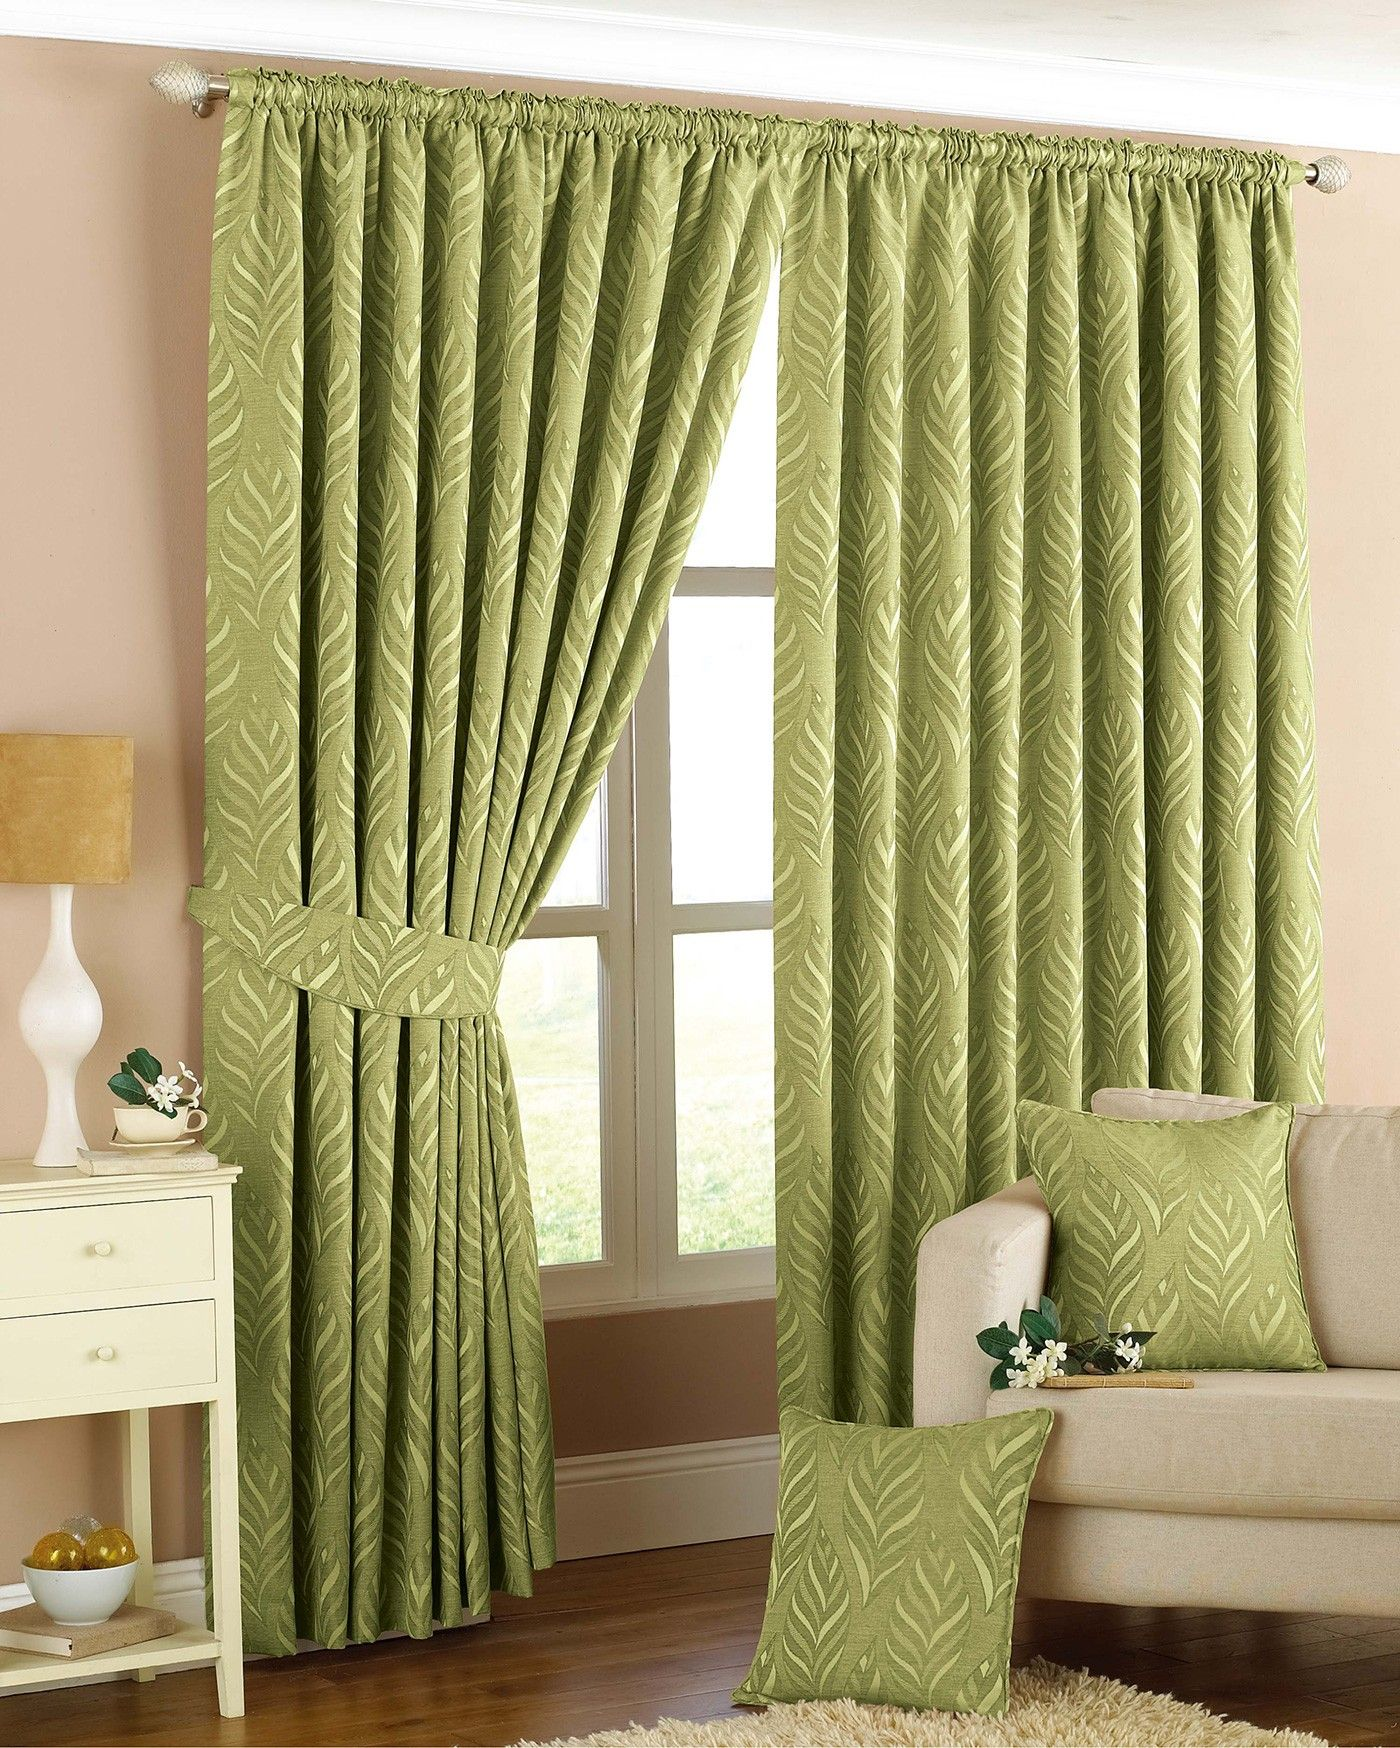 Willow Pencil Pleat Curtains Green Lime Green Curtains Curtains